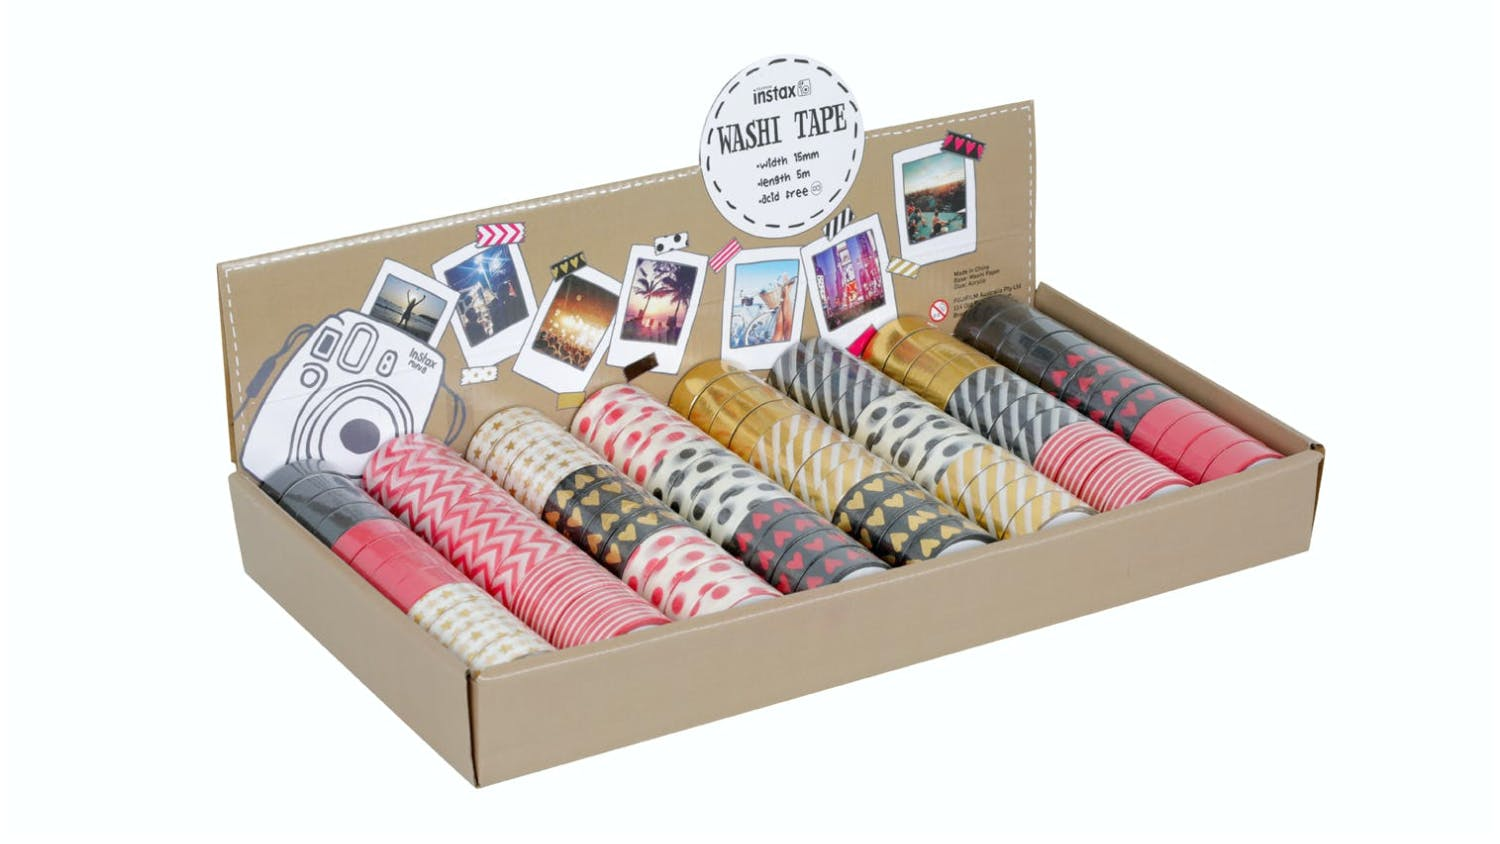 Instax Washi Tape Single Roll Pack - Hearts